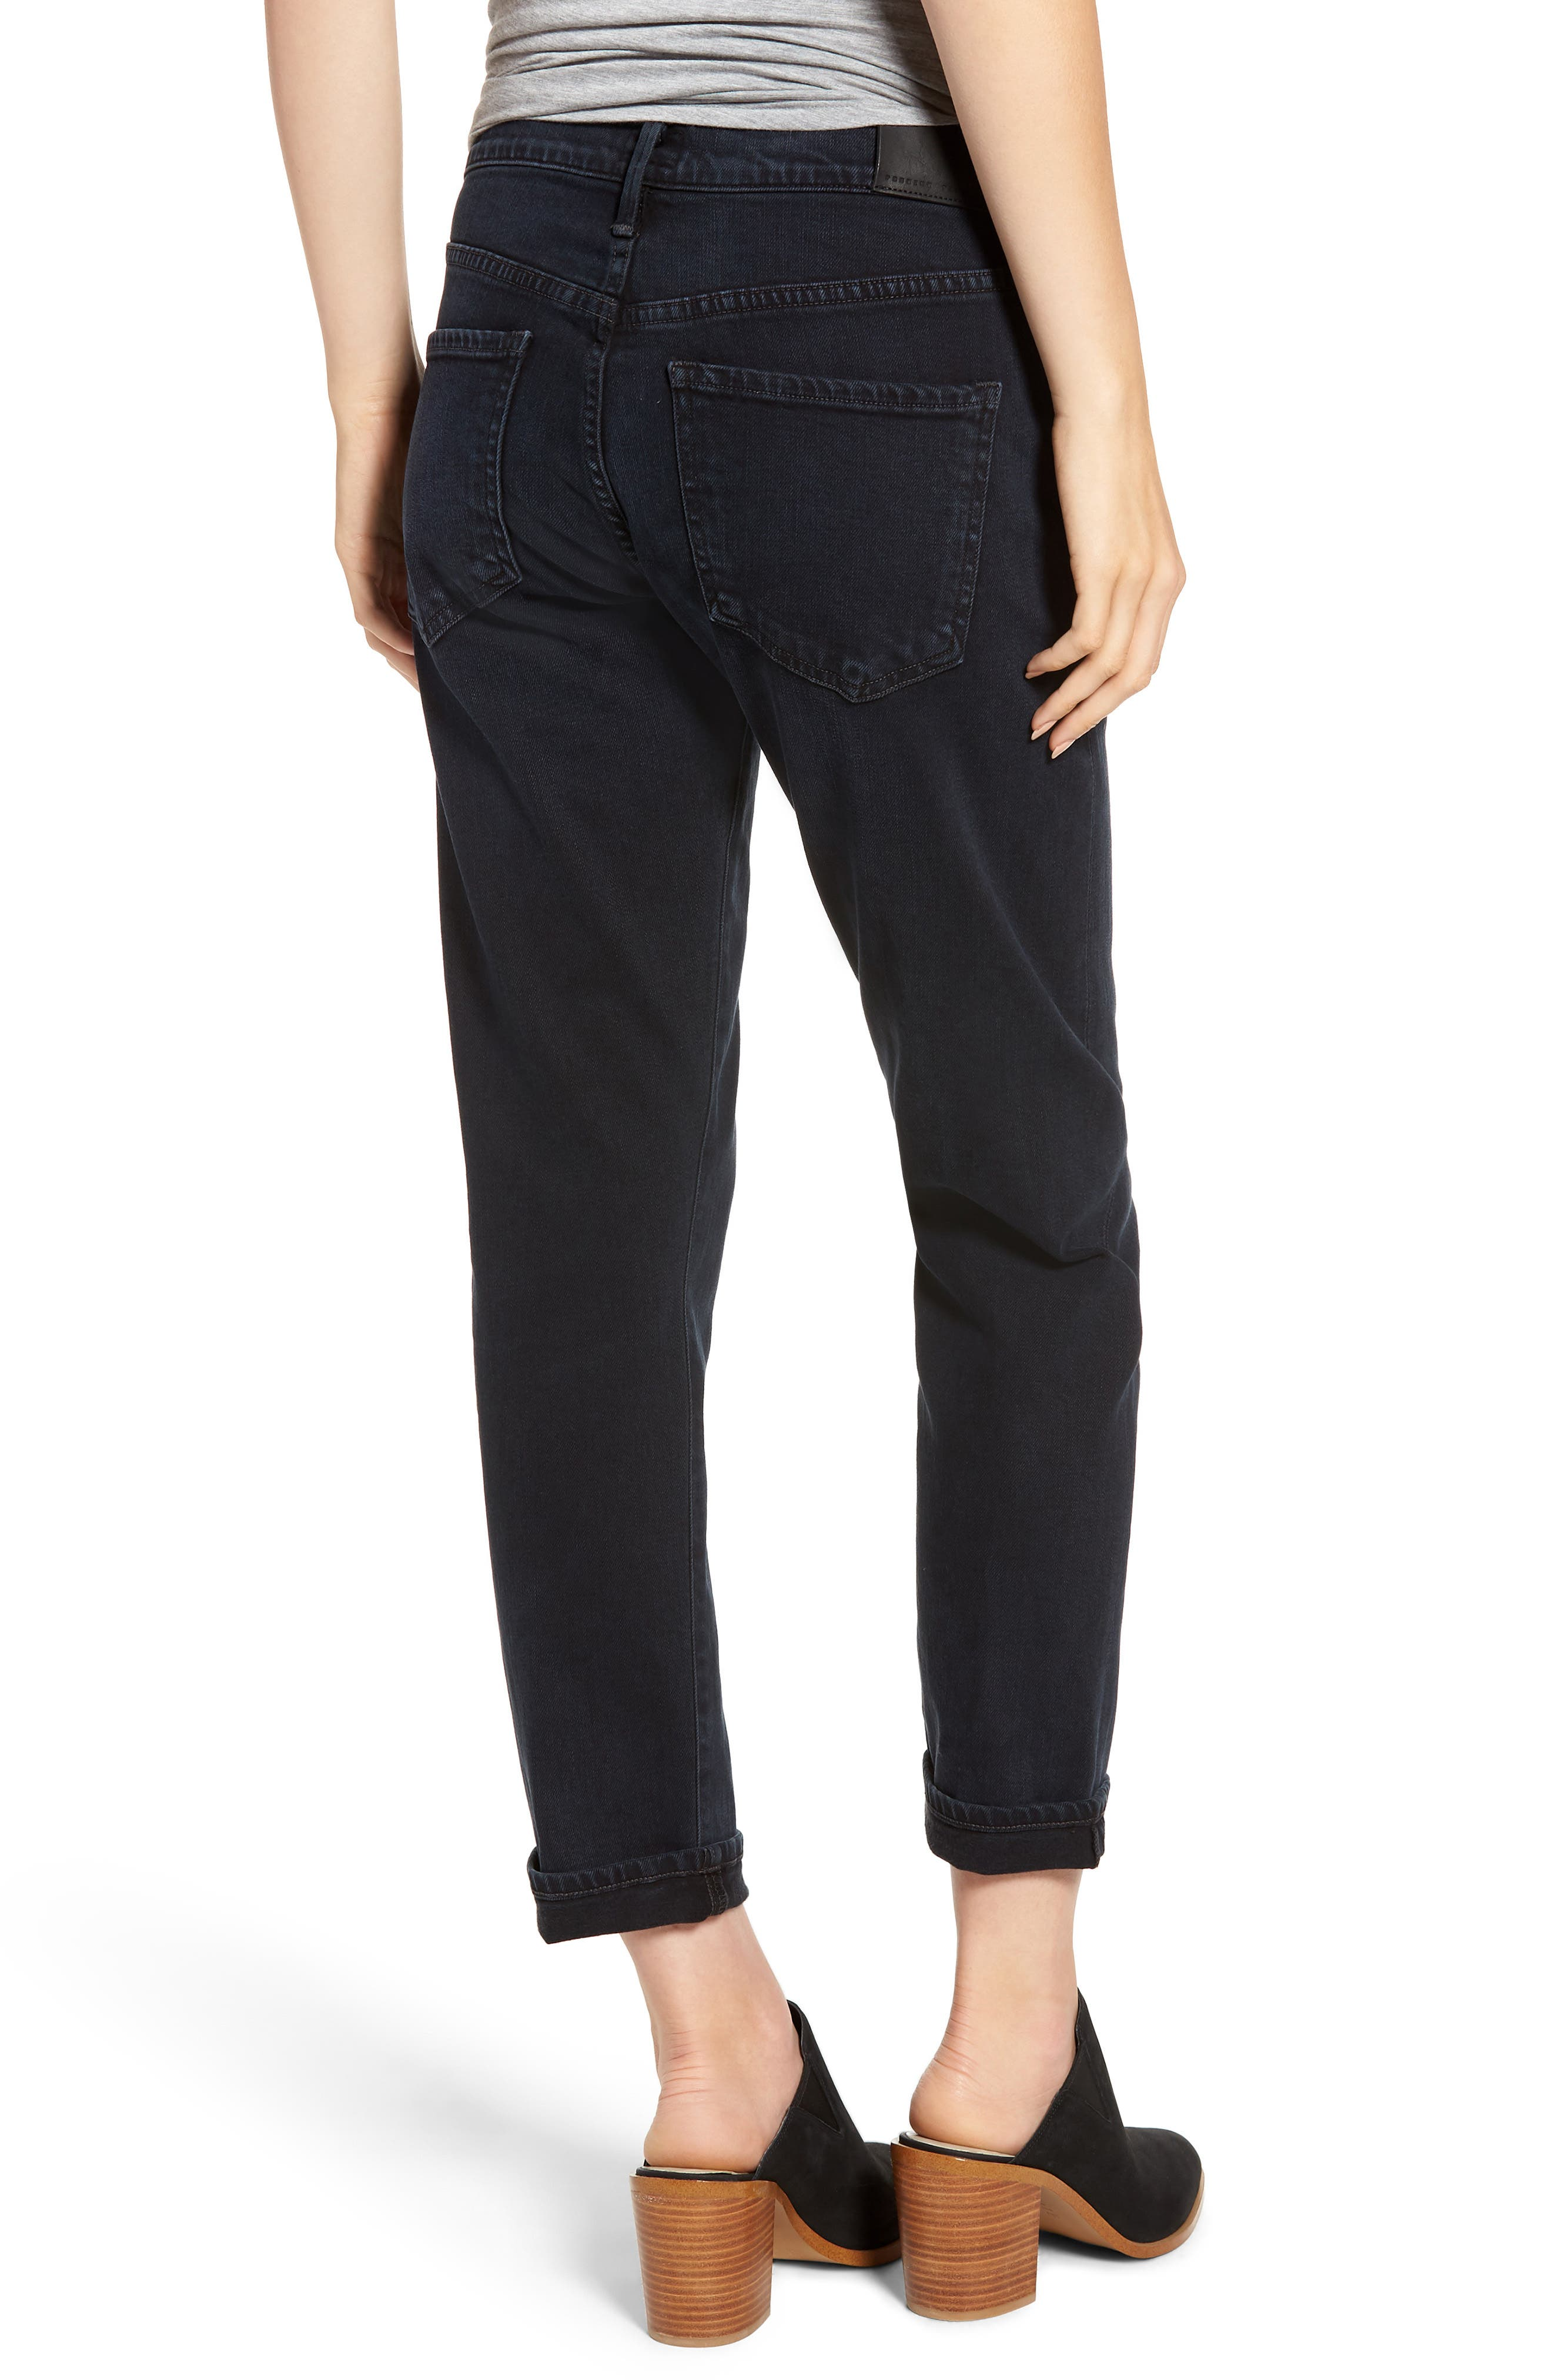 CITIZENS OF HUMANITY, Emerson Slim Boyfriend Jeans, Alternate thumbnail 2, color, NIGHT SHADE